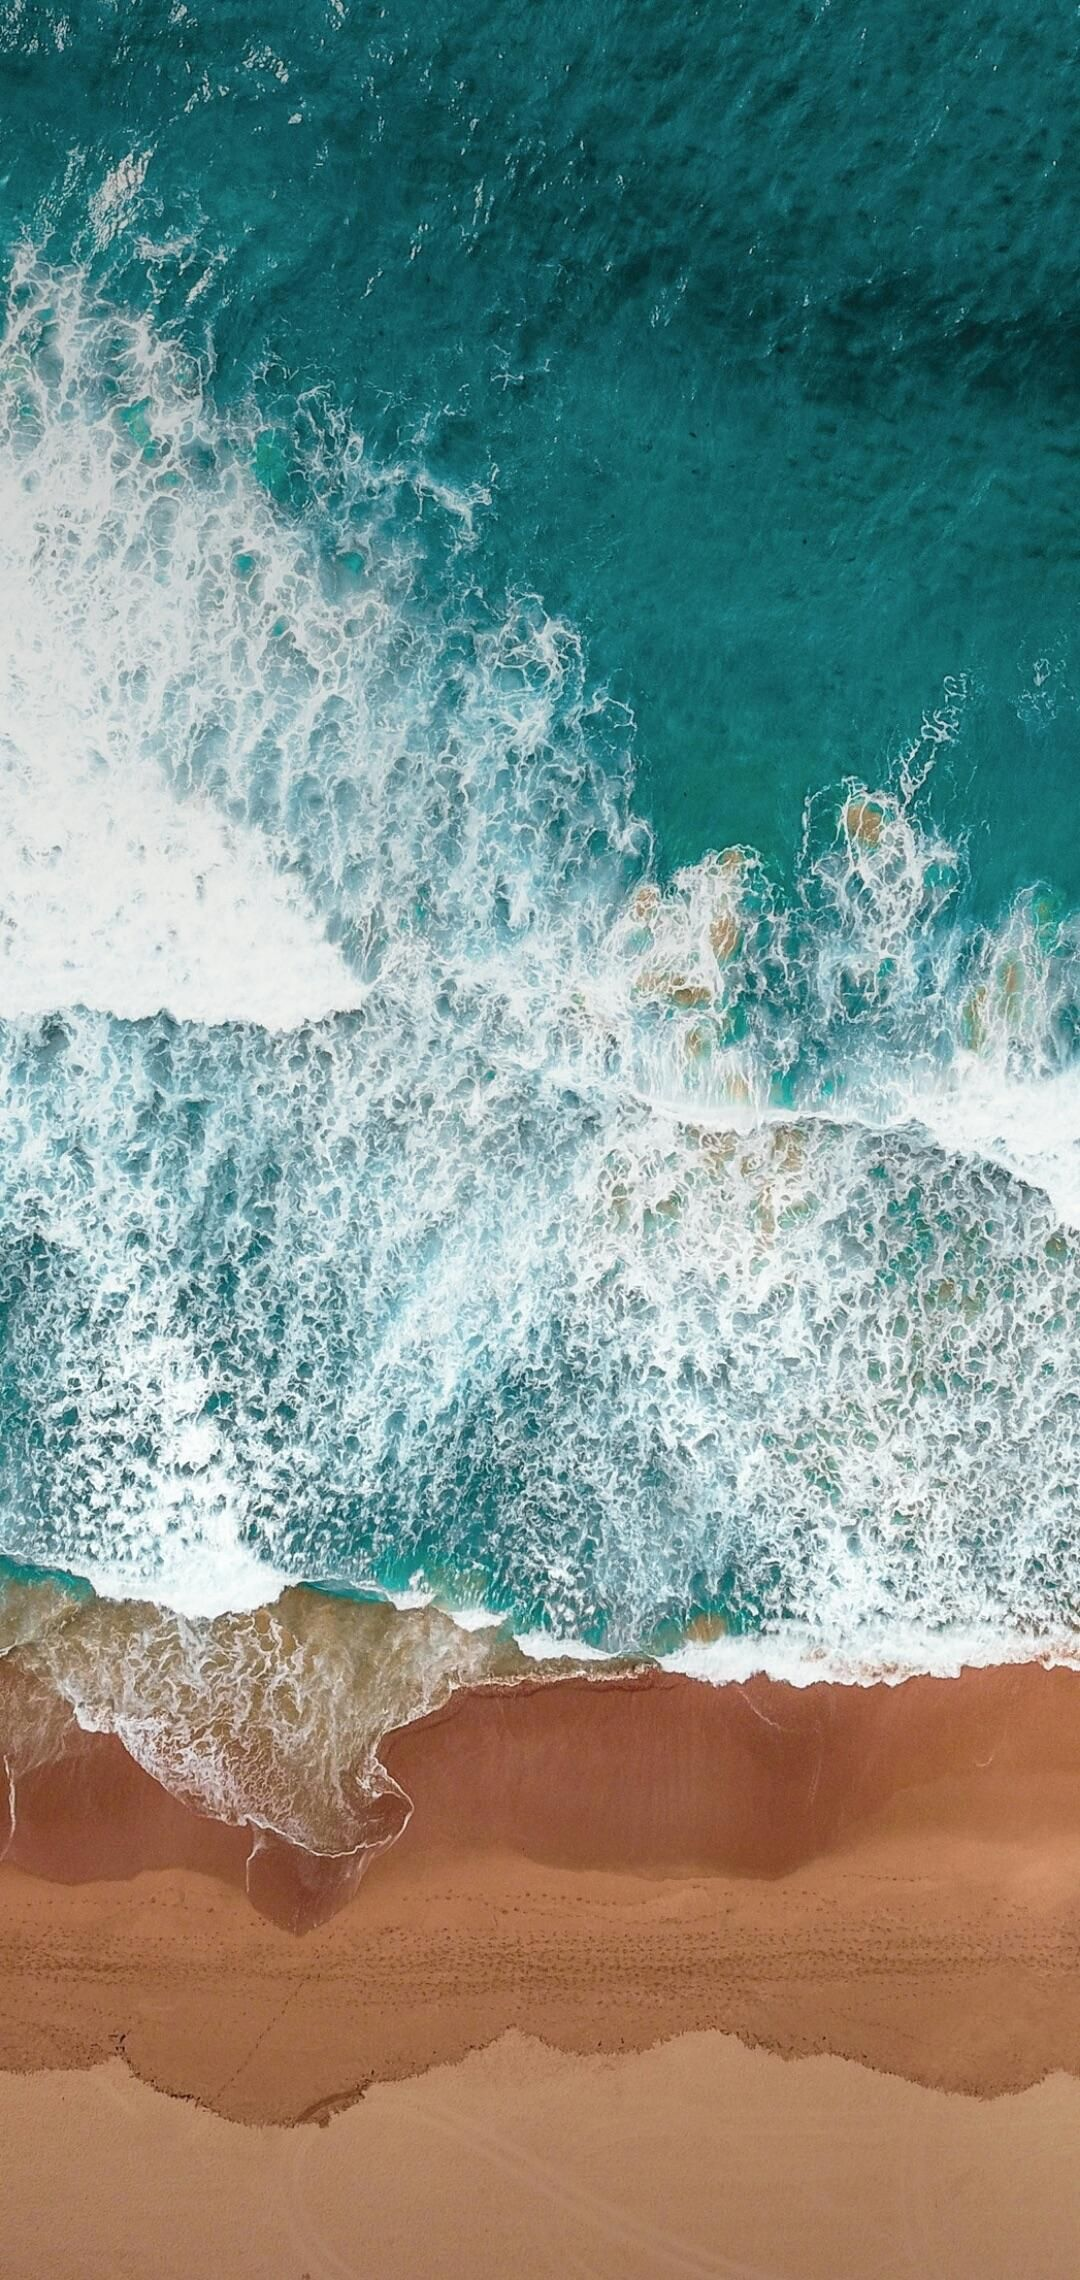 Pixel 3 Xl Concept Wallpaper Aerial Beach Photography Landscape Photography Beach Photos